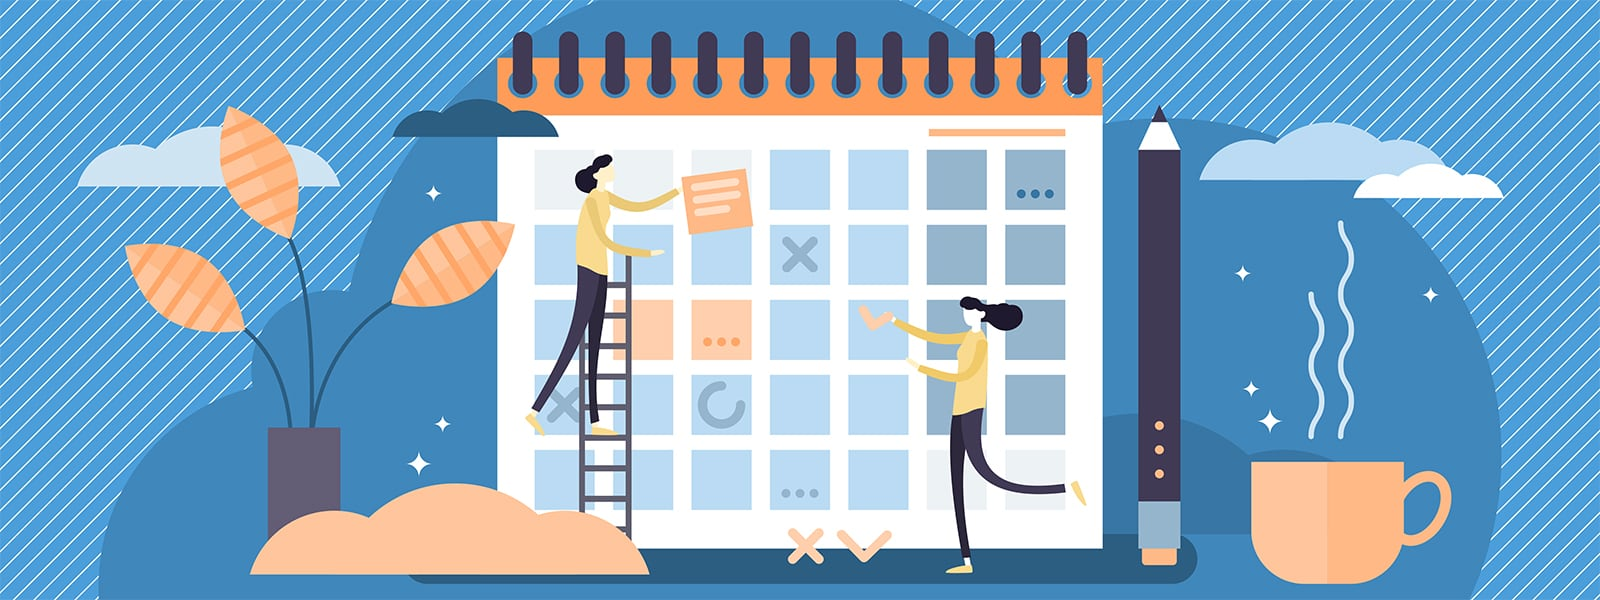 Illustration of Two People Putting Together a Content Plan | Woodruff